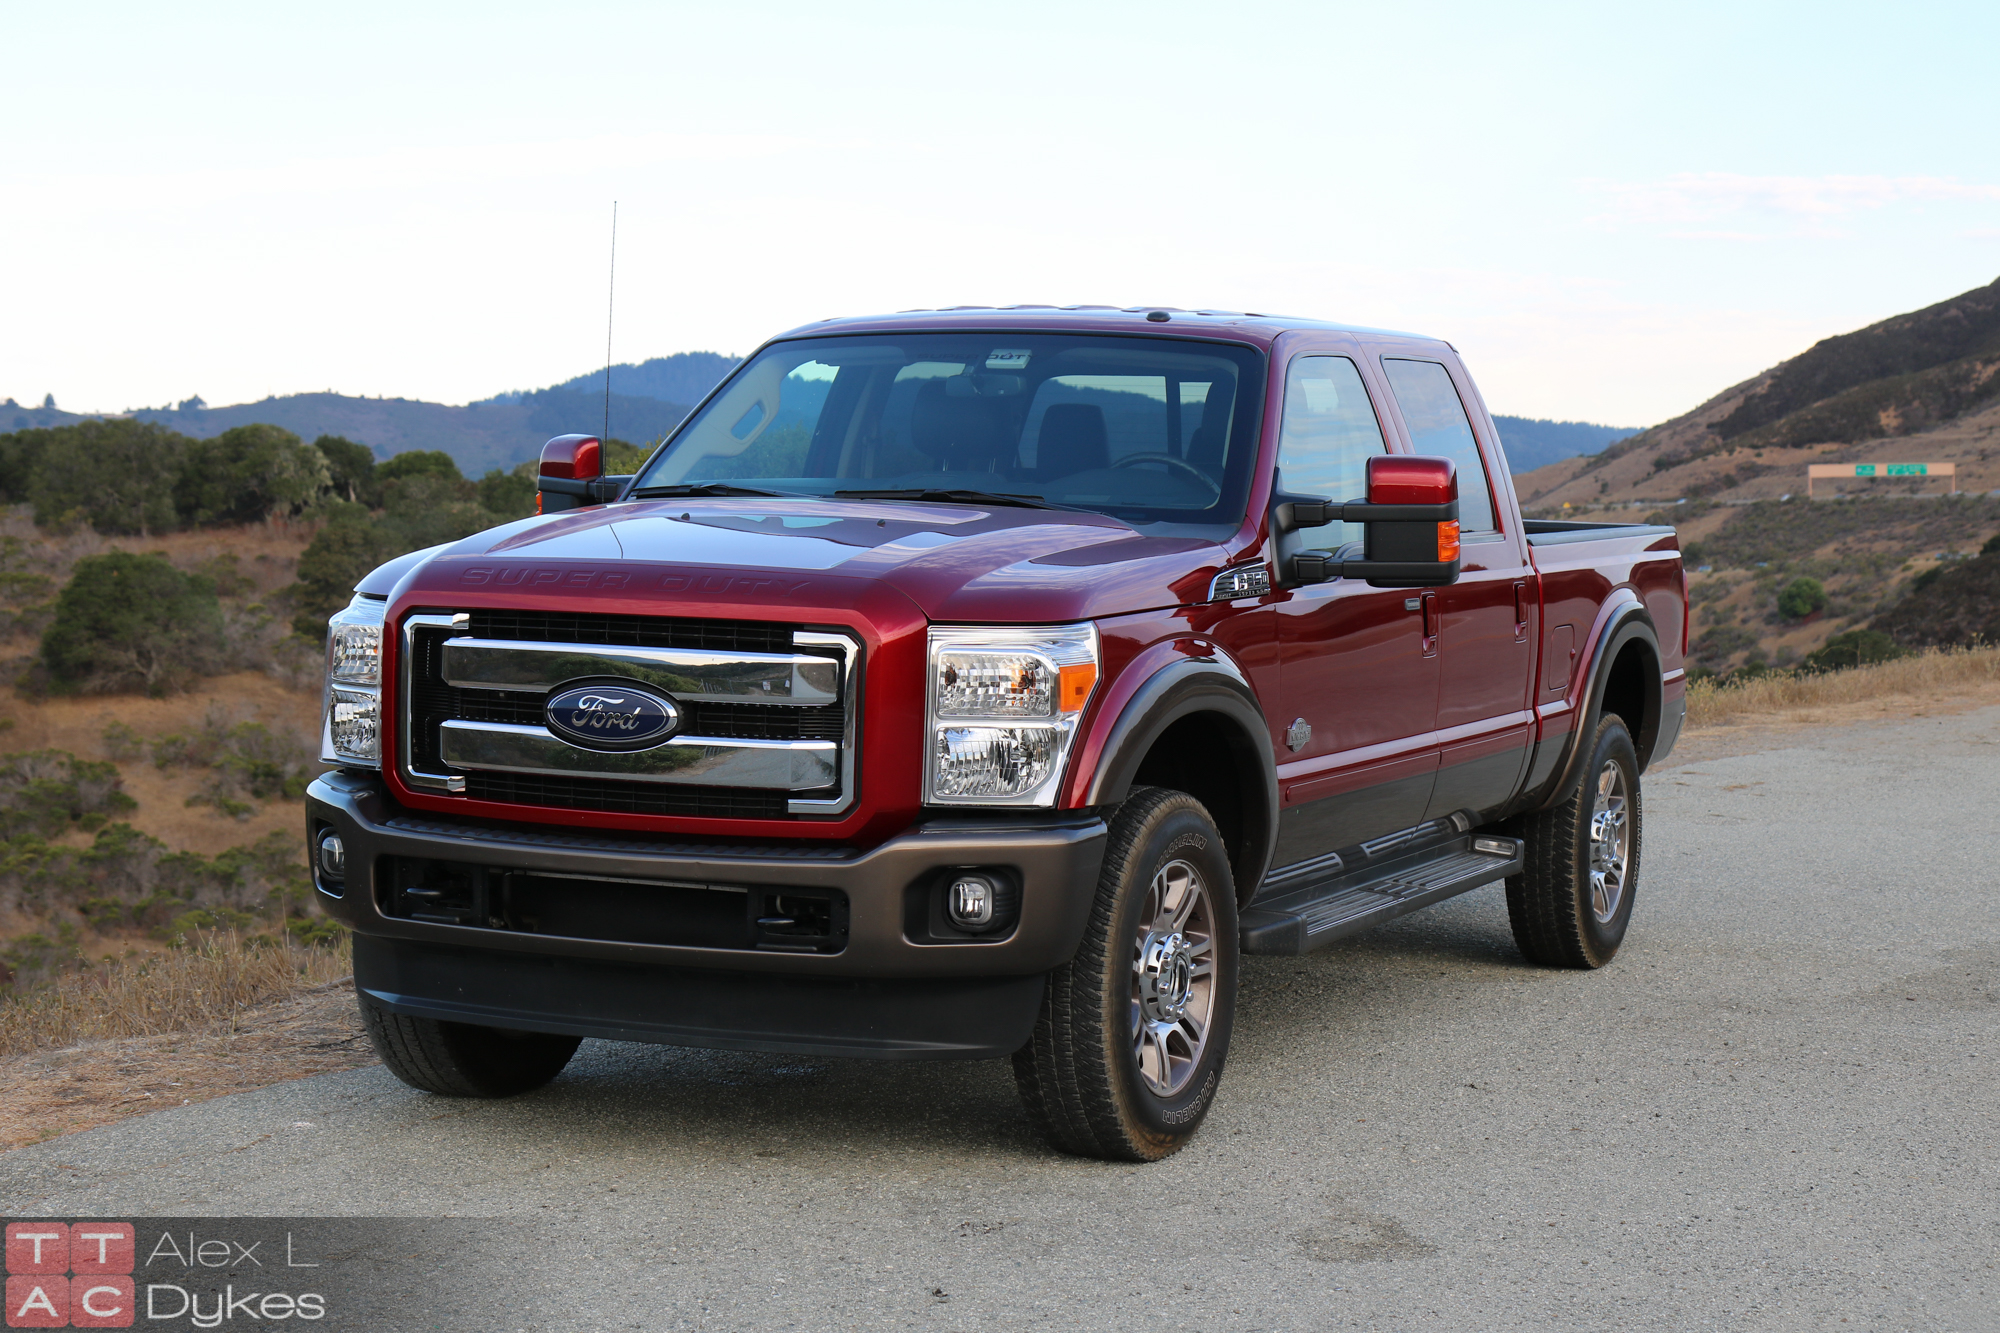 2015 ford f 350 super duty review hauling above the limit w video. Black Bedroom Furniture Sets. Home Design Ideas